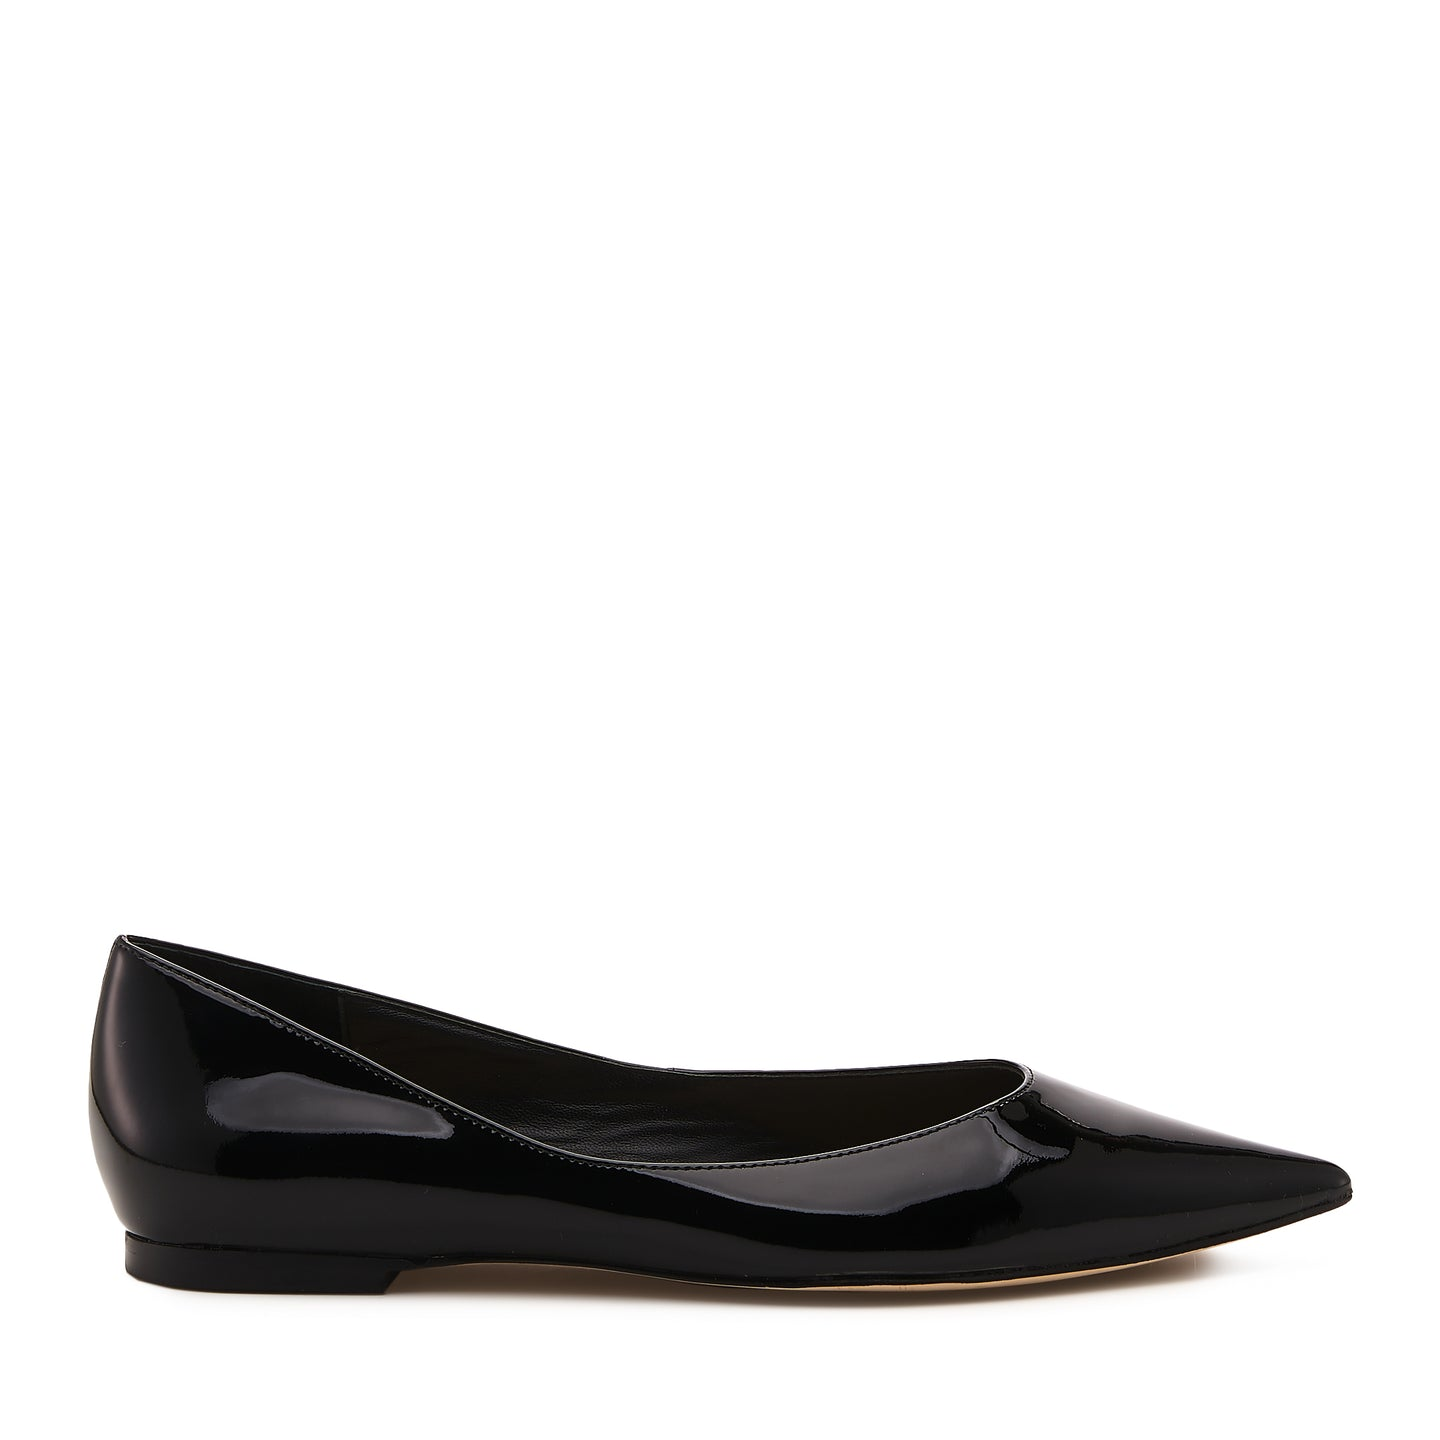 annika flat black patent side